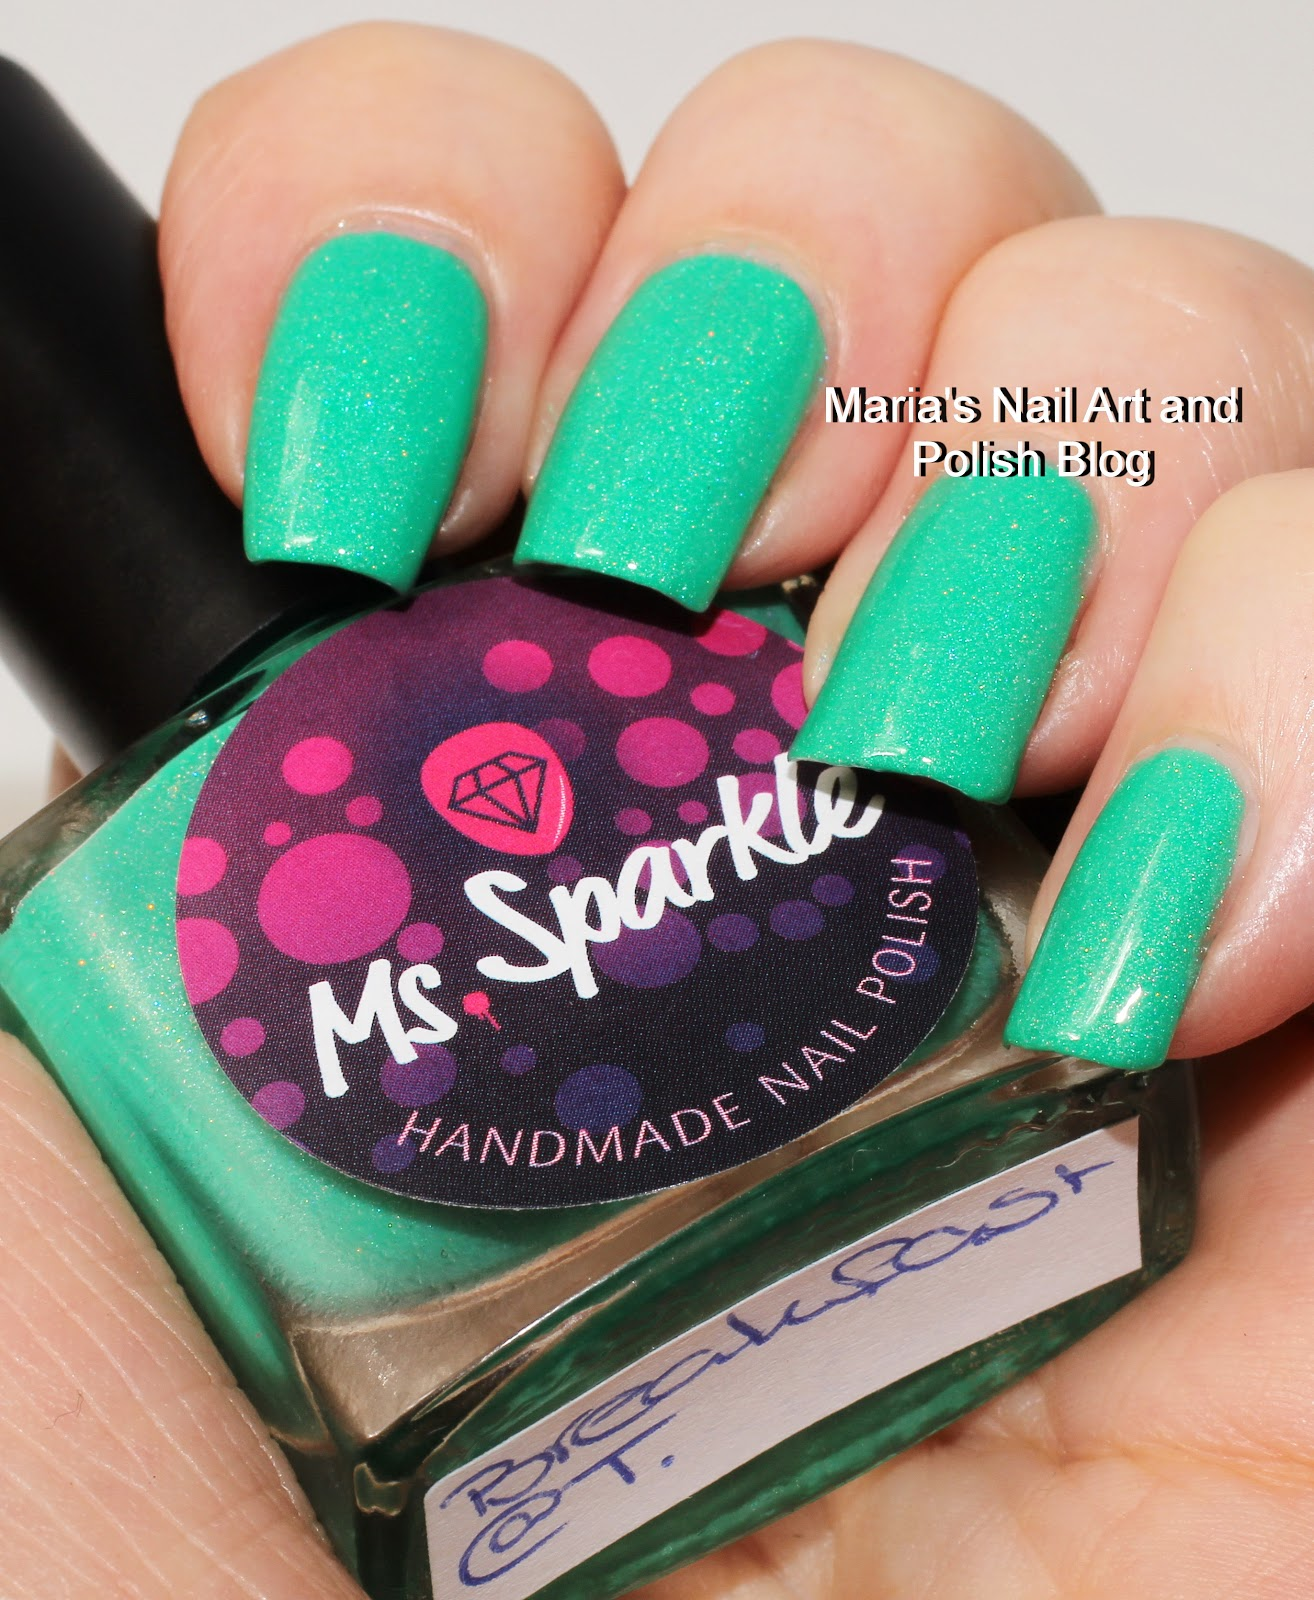 Marias Nail Art And Polish Blog Subtle Floral Nail Art On: Marias Nail Art And Polish Blog: Ms. Sparkle Breatkfast @T